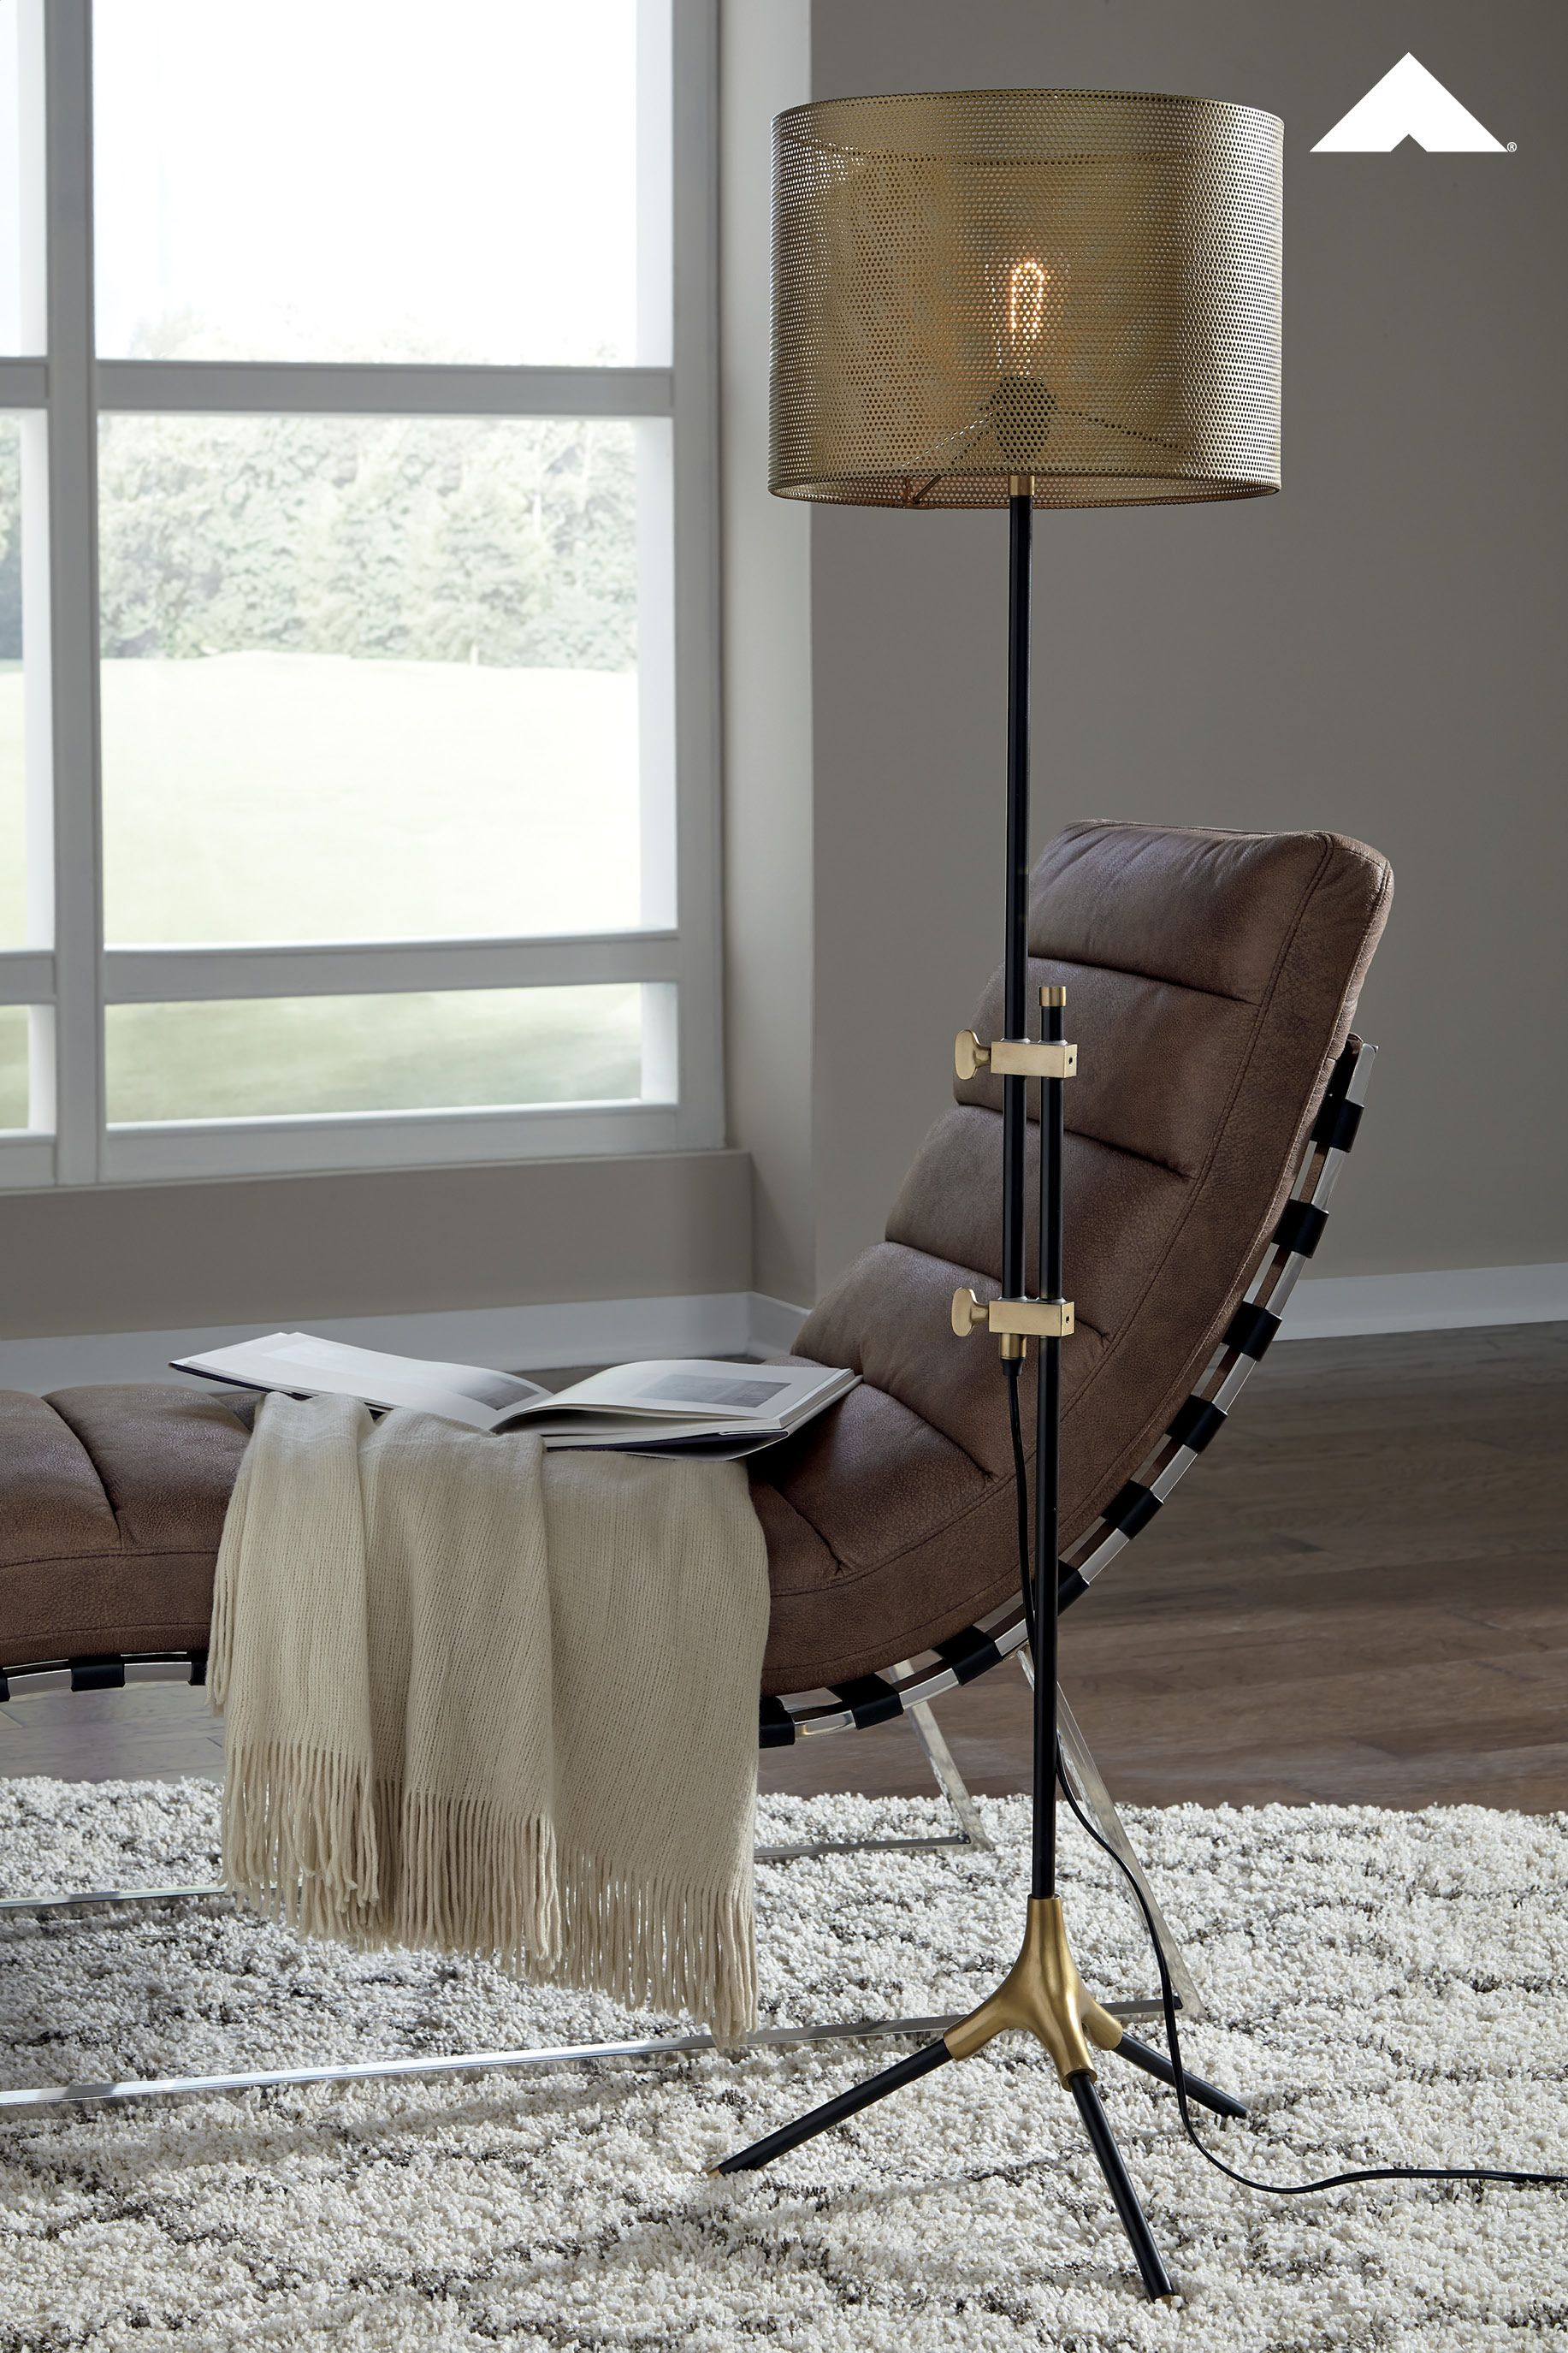 Mance Gray Brass Finish Floor Lamp Wowing With A Metal Mesh Shade This Floor Lamp Is Lighting Done Right Br Metal Floor Lamps Floor Lamp Ashley Furniture